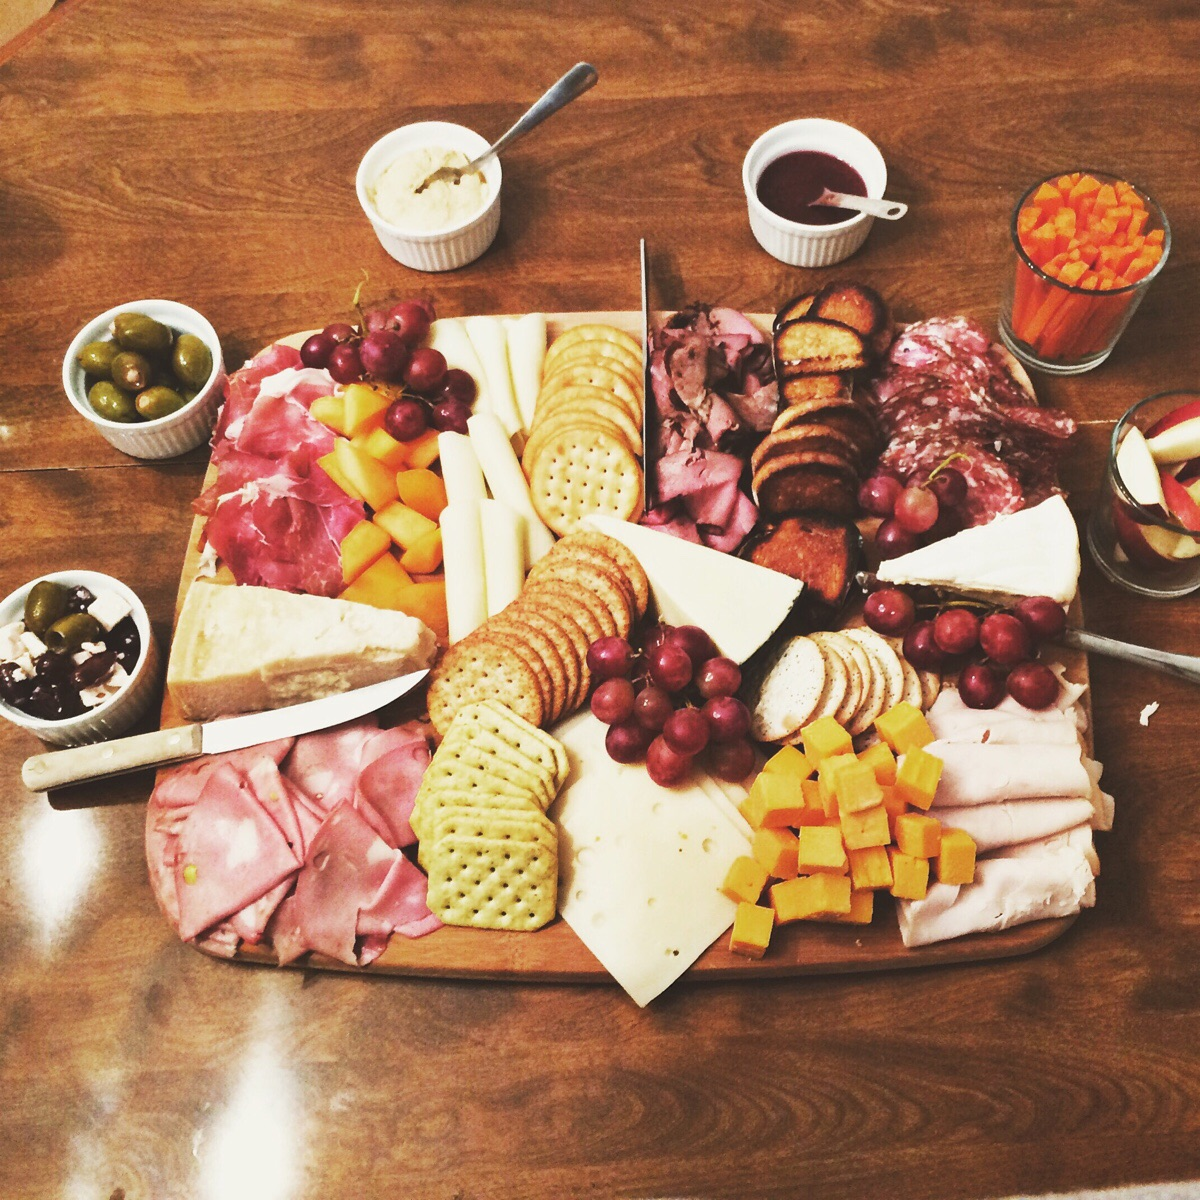 Charcuterie and Sauces